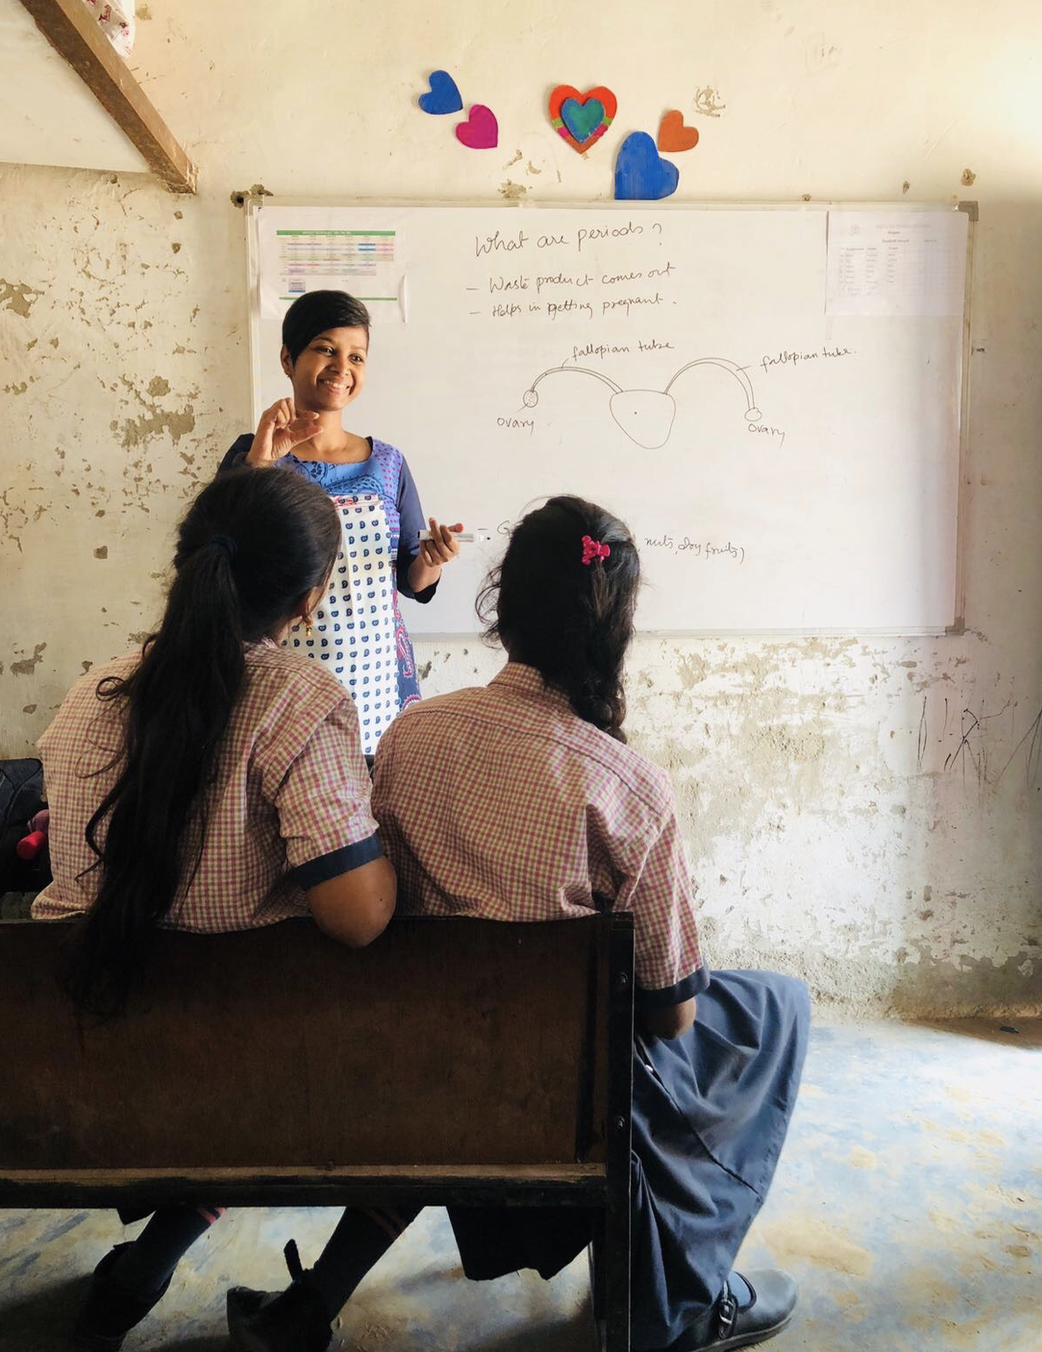 Watching Sneha, originally an architect, do this task with passion for the subject matter and love for the girls she served was inspiring! She lit up when she could help the girls with understanding.